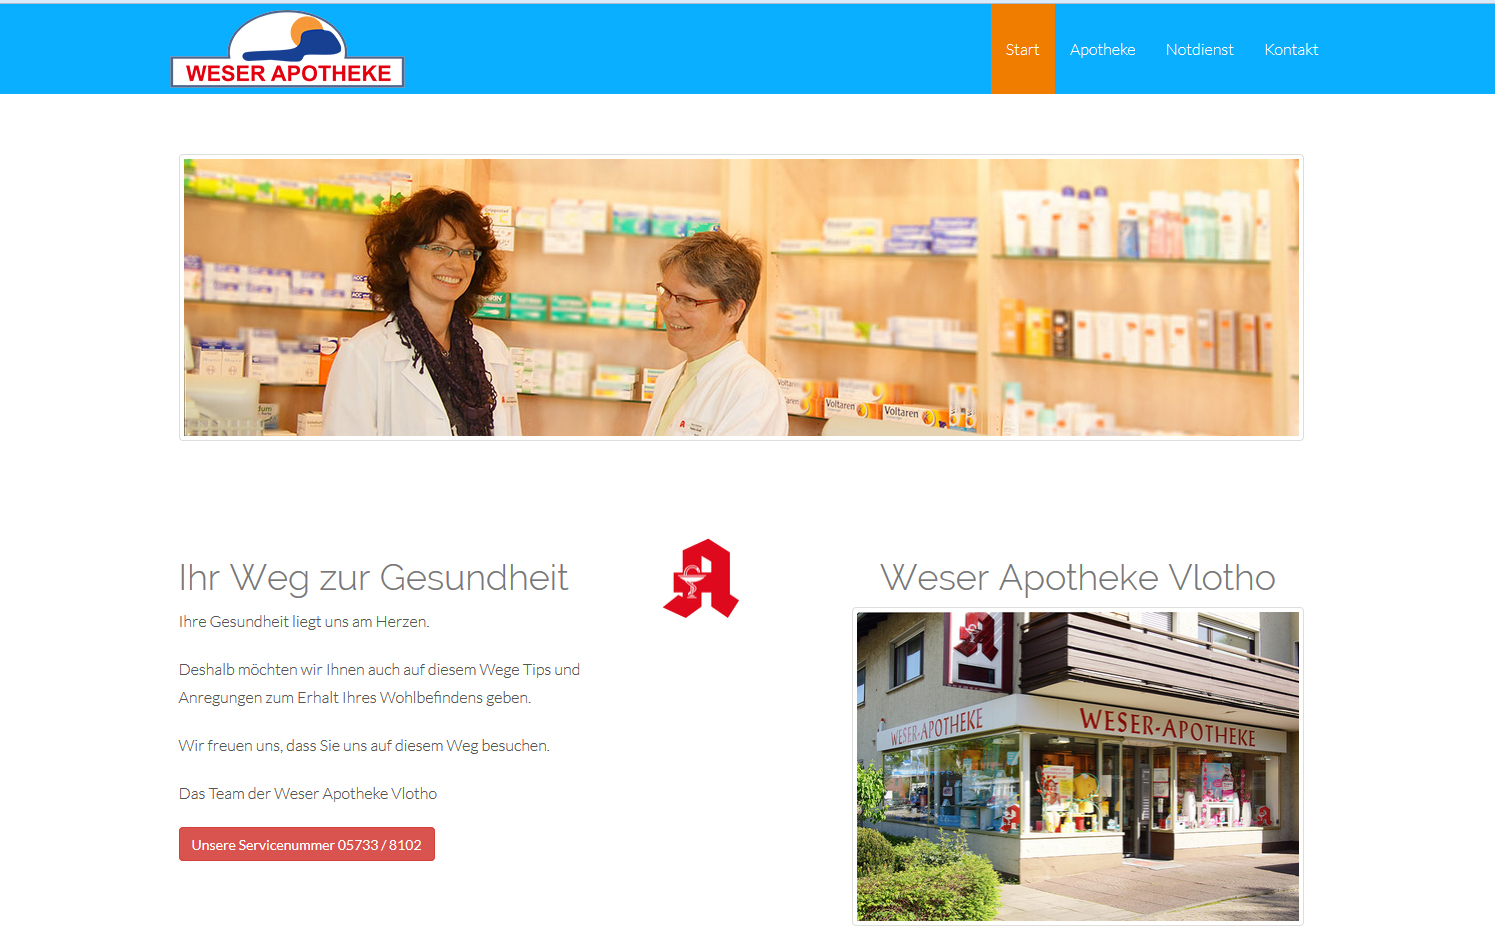 weser-apotheke-vlotho, screendesign, internetdesign, content-management-system, cms, responsiv